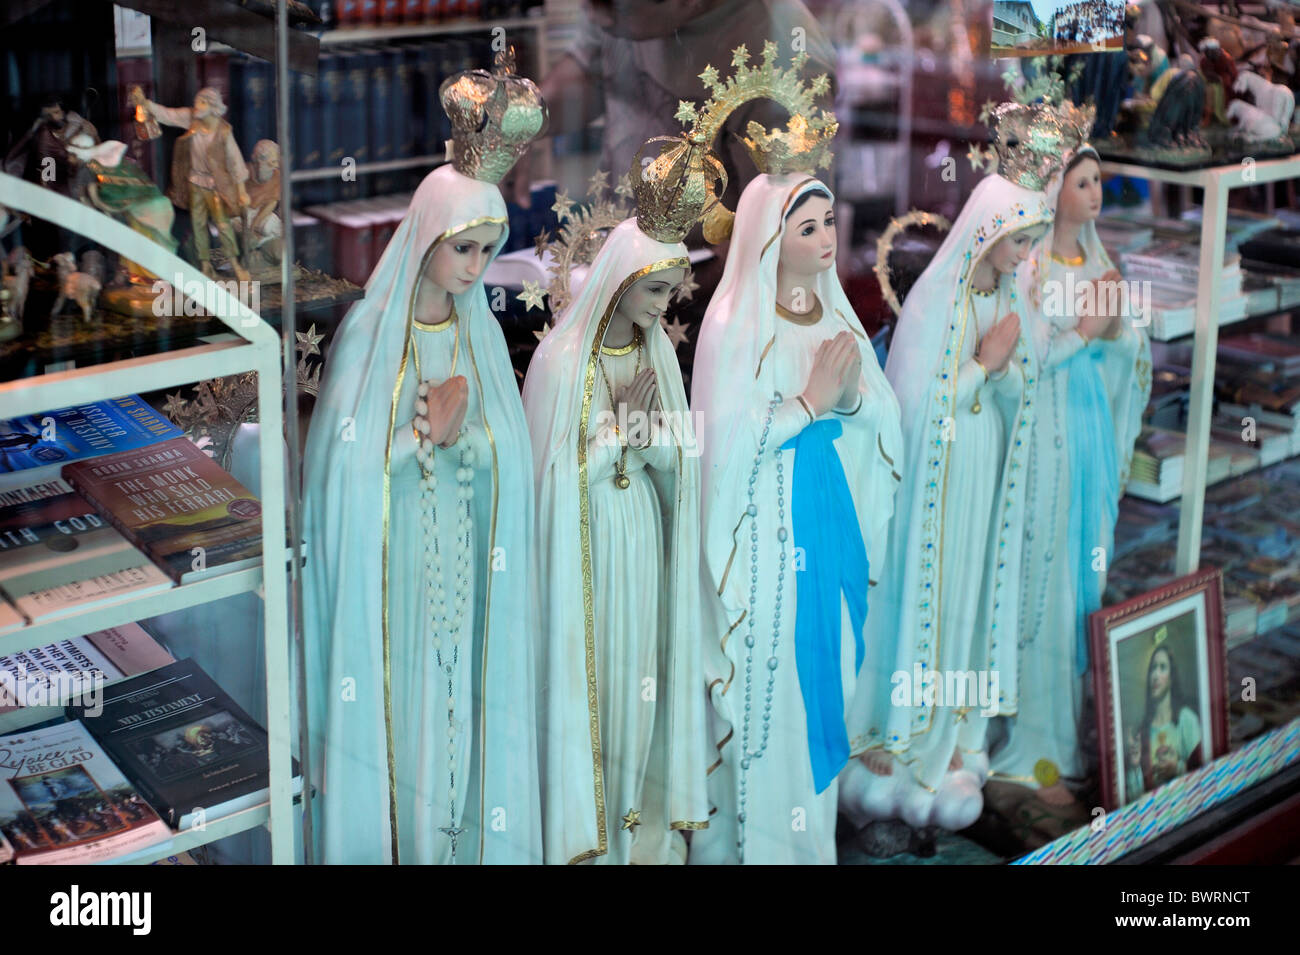 Catholic Figurines Ayala Center Cebu City Philippines - Stock Image